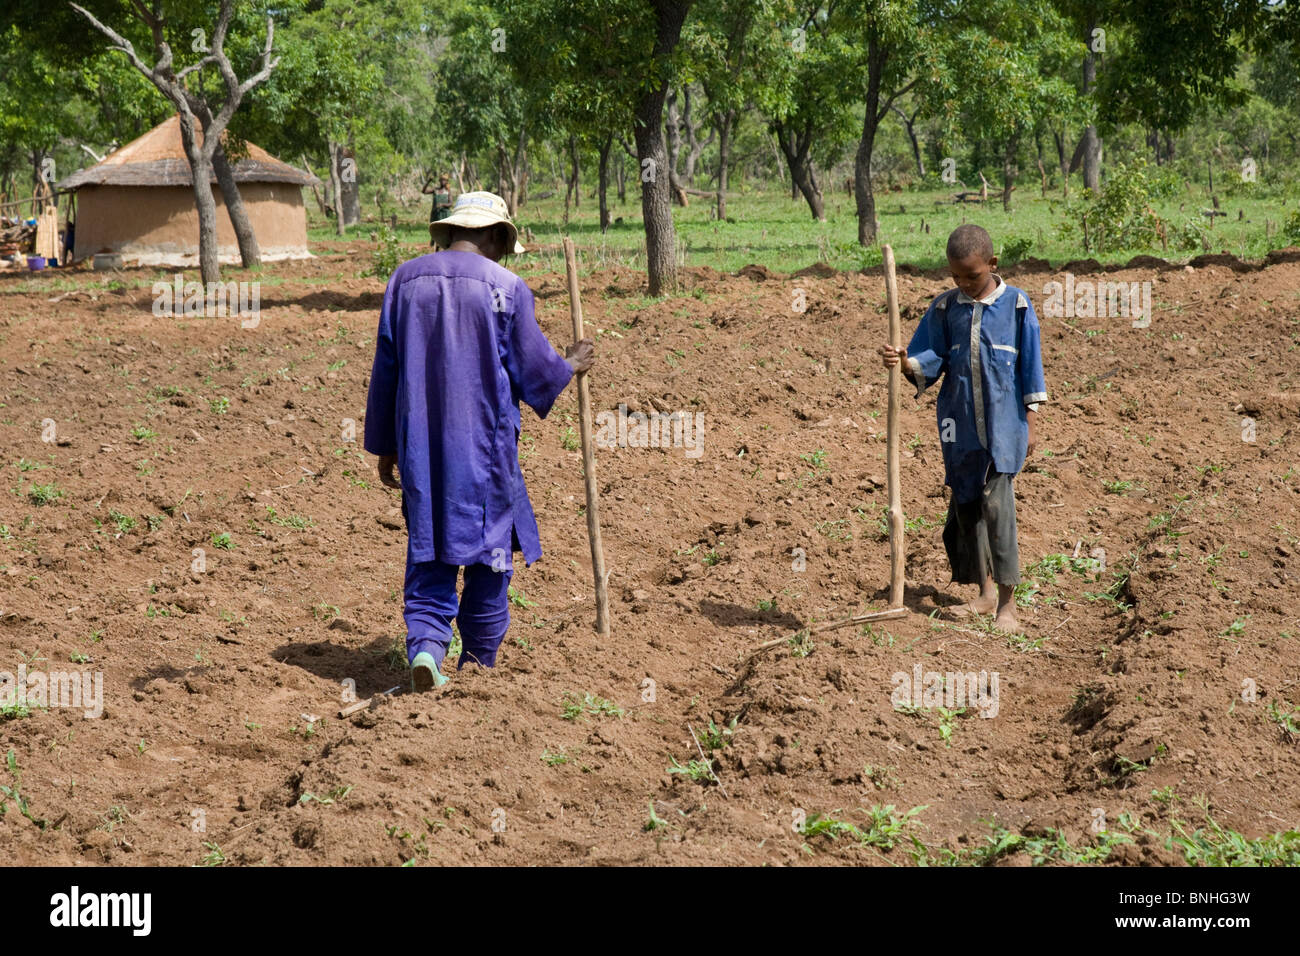 Sowing the maize crop in Ghana. They are making holes in the ridges of soil in which other children will sow maize Stock Photo